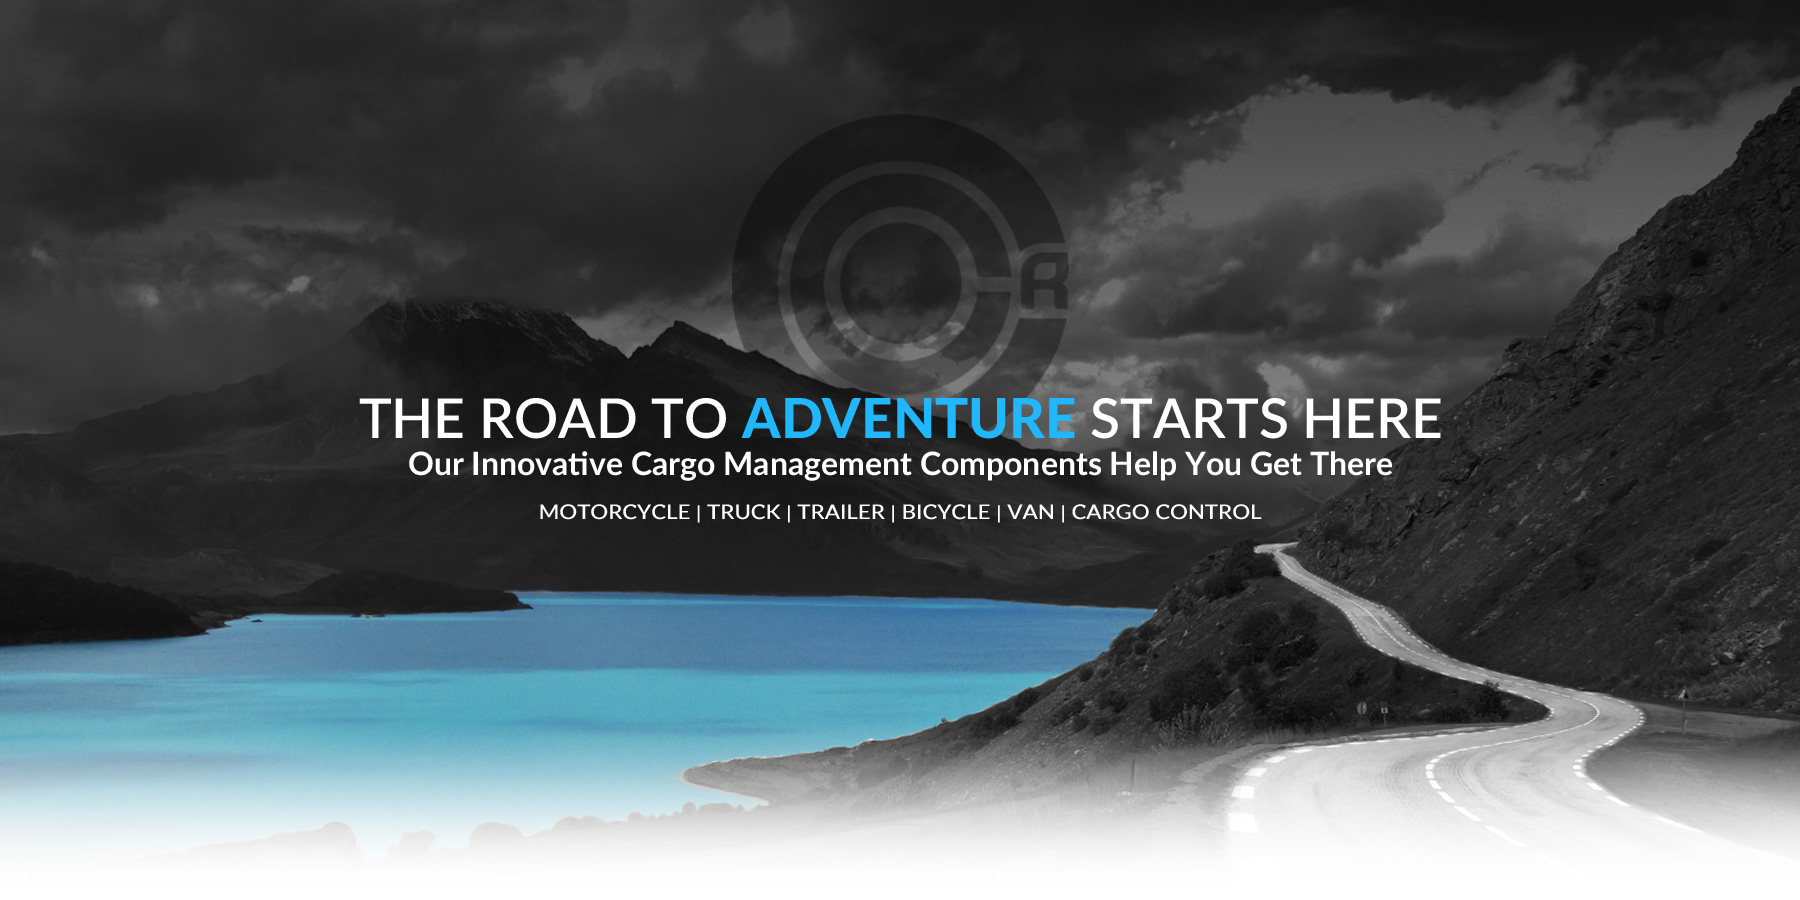 The road to adventure starts here at CCR Sport. Our Innovative cargo management components help you get there.